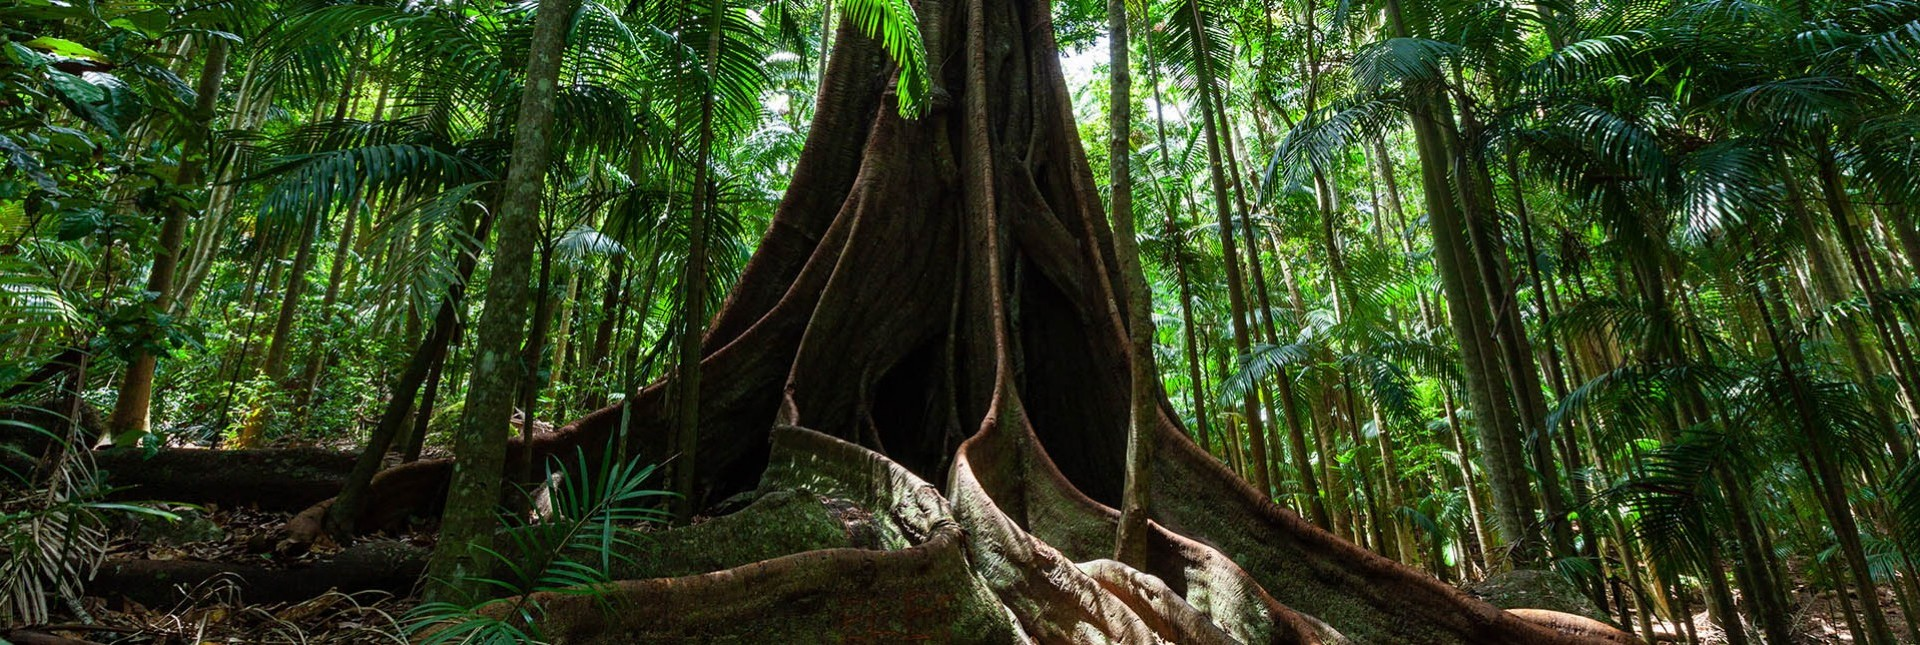 How Fig Trees Restore Forests and Biodiversity